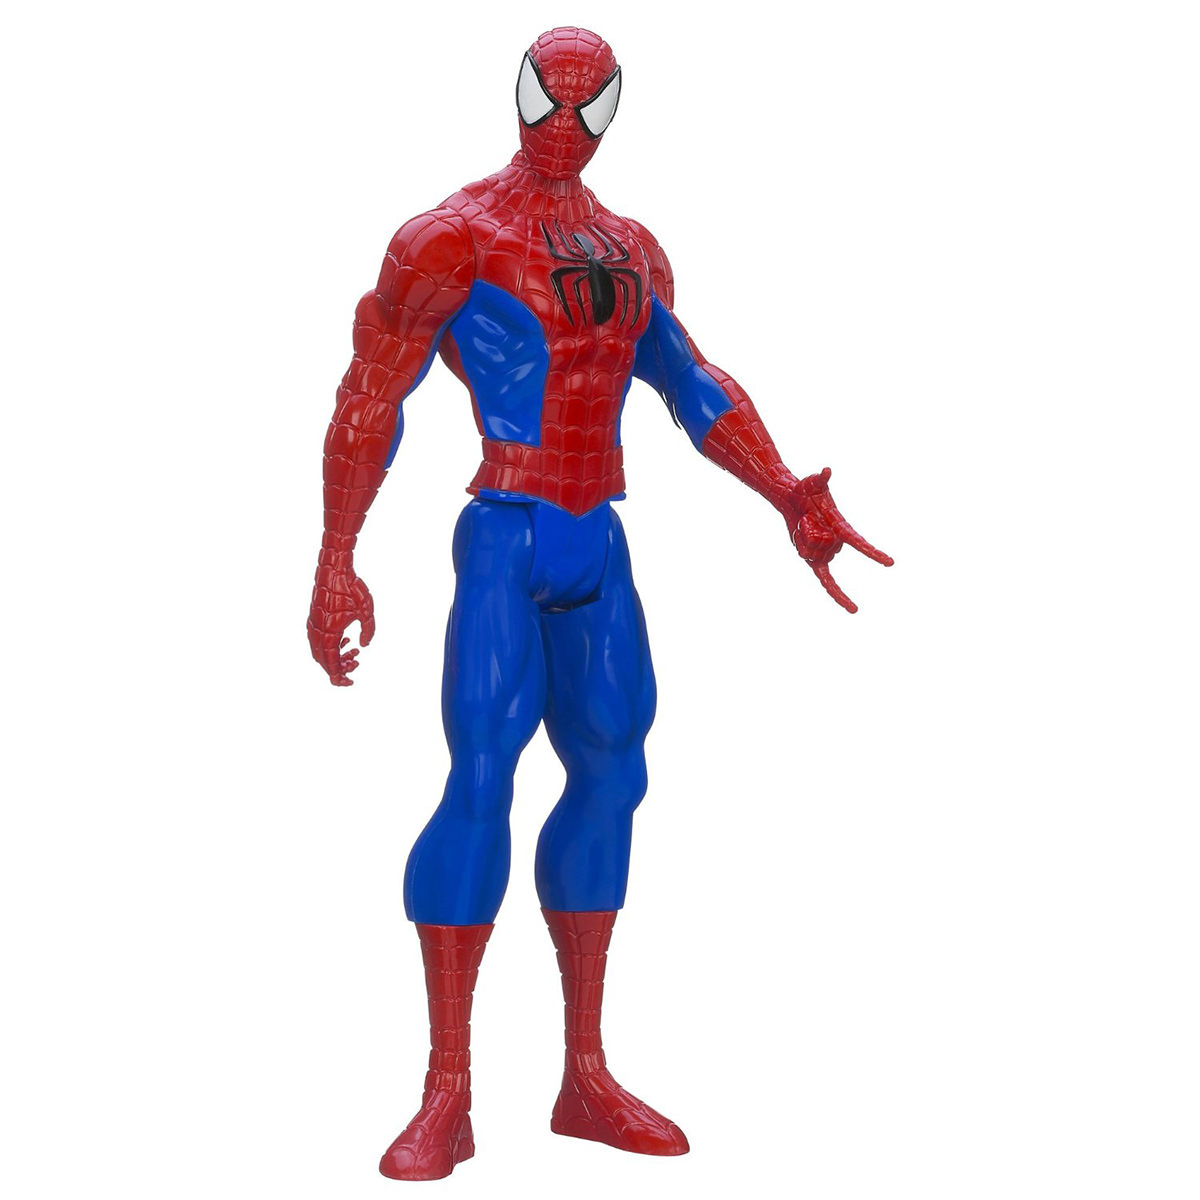 marvels ultimate spider-man